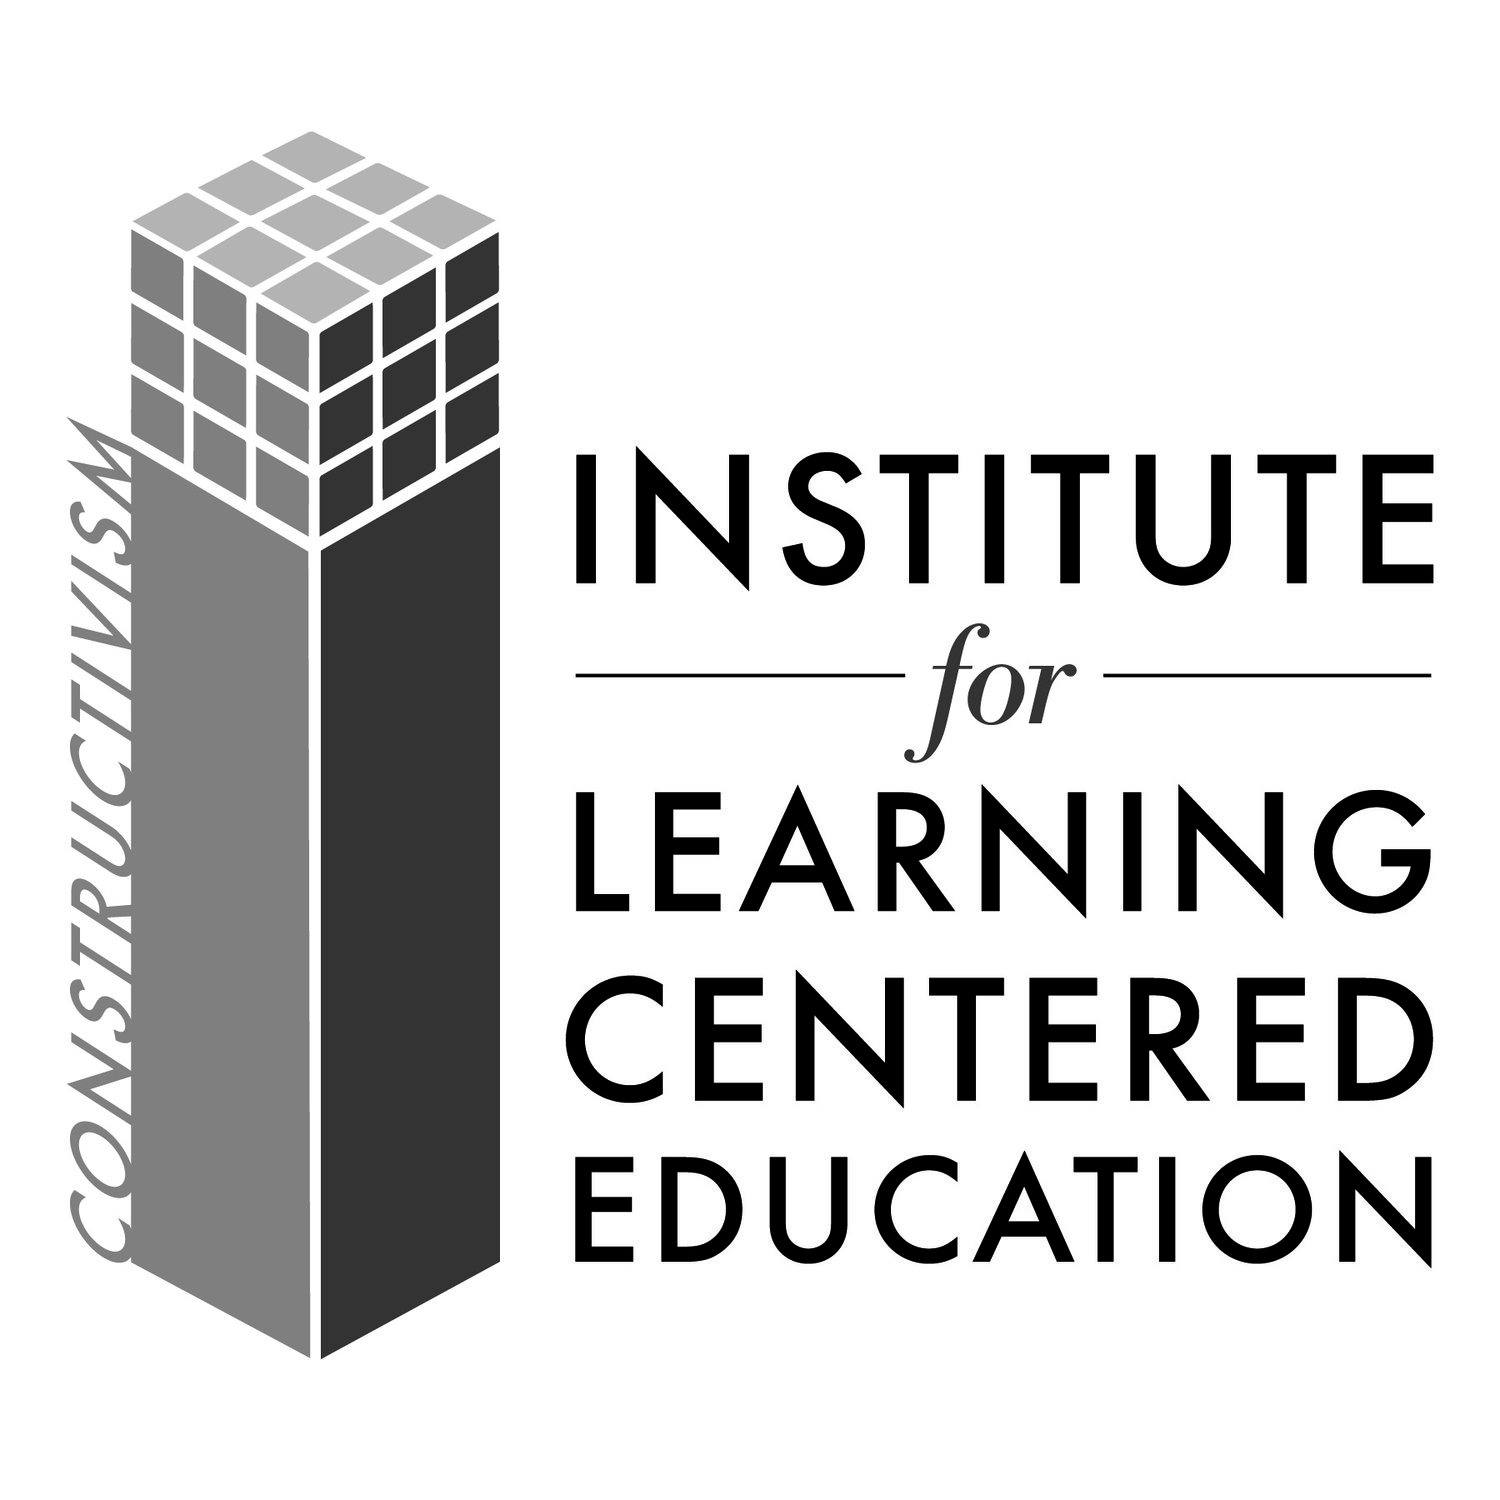 Institute for Learning Centered Education